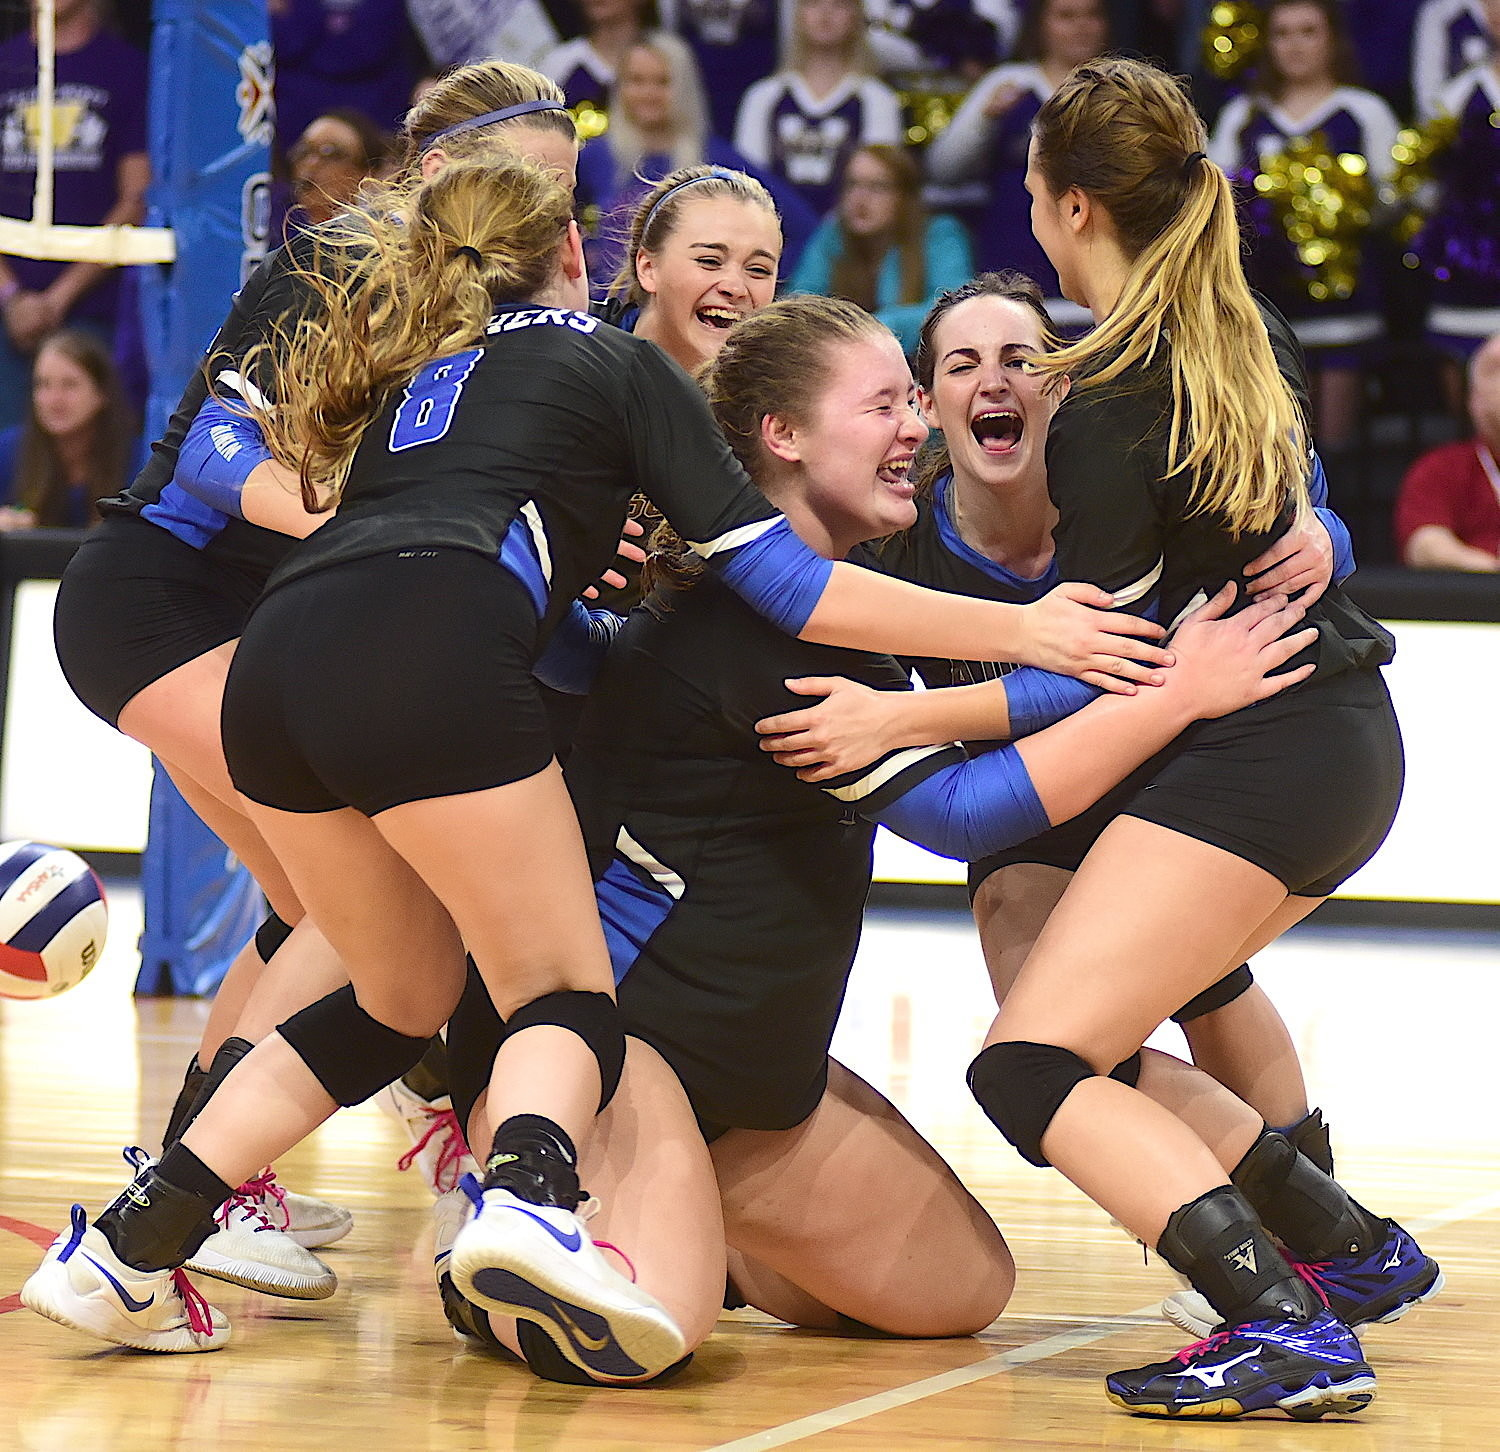 Addison volleyball players celebrate their state championship win over Winston County in Birmingham.